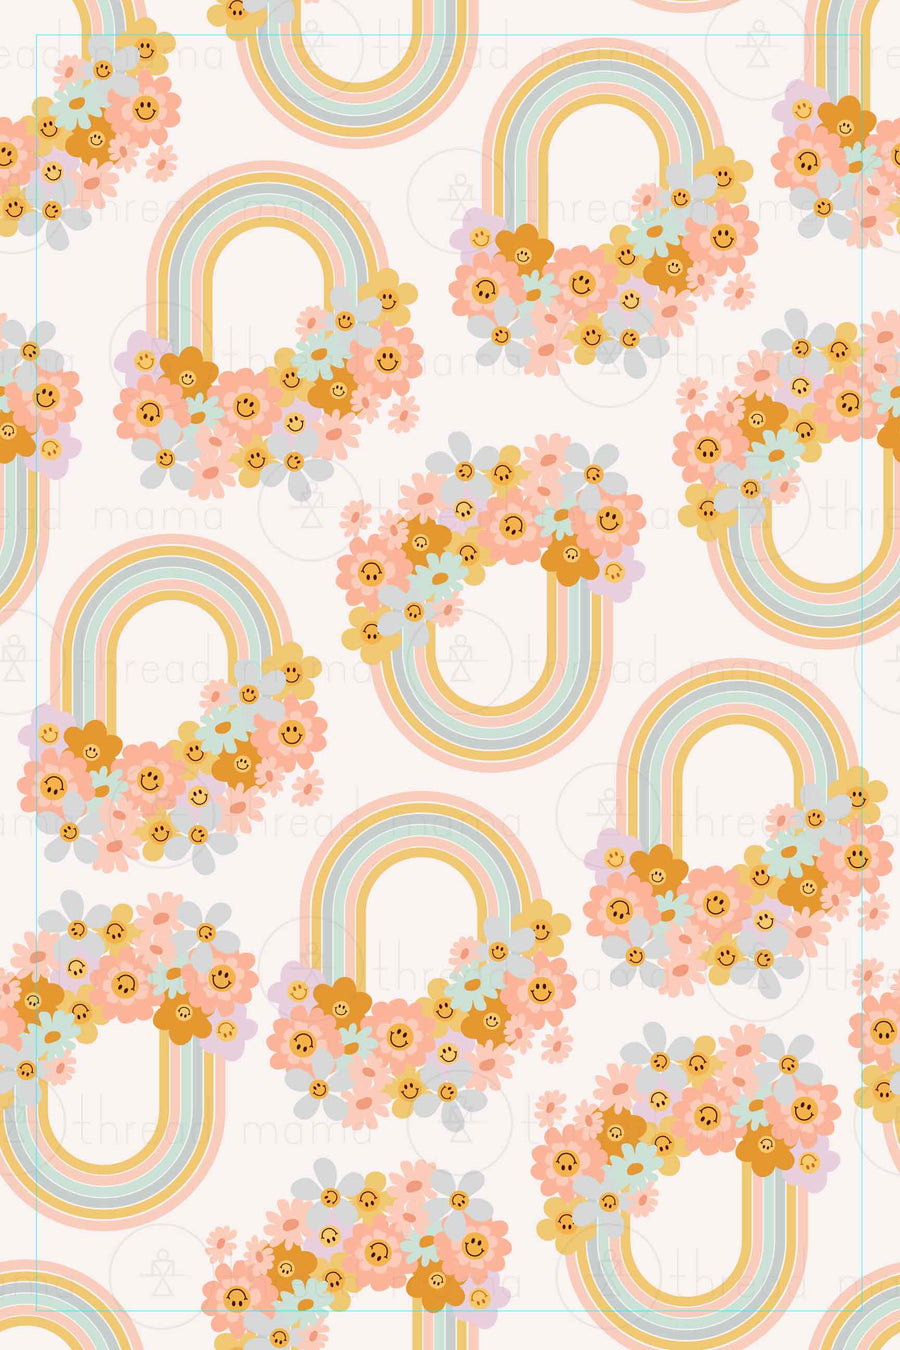 Background Pattern 65 - Rainbow Smiley Face Flowers